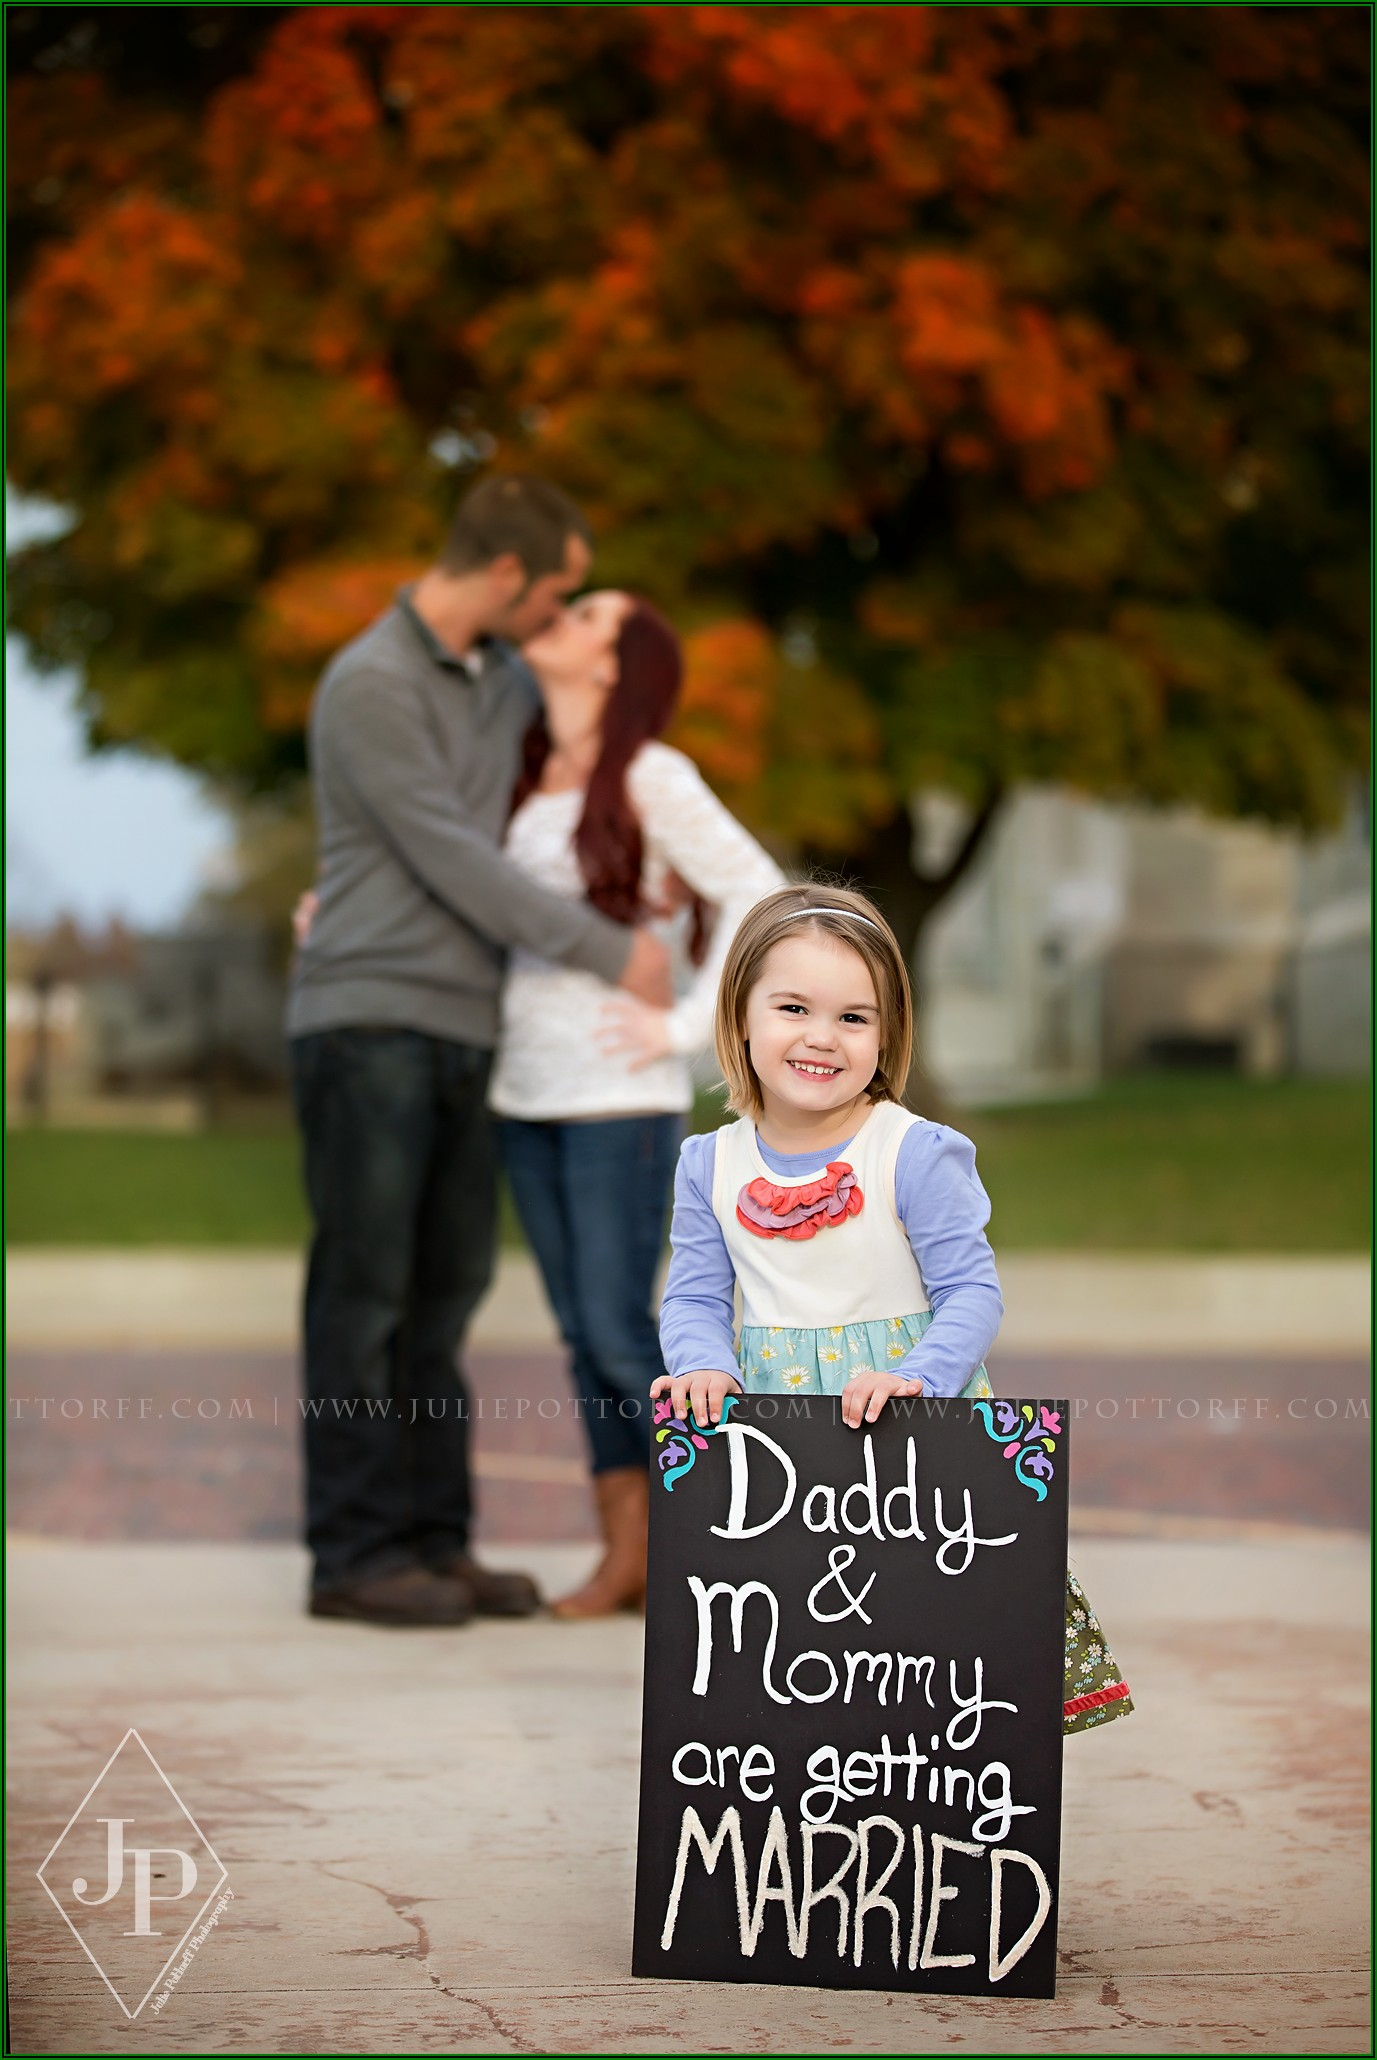 Cute Ways To Announce Engagement To Family